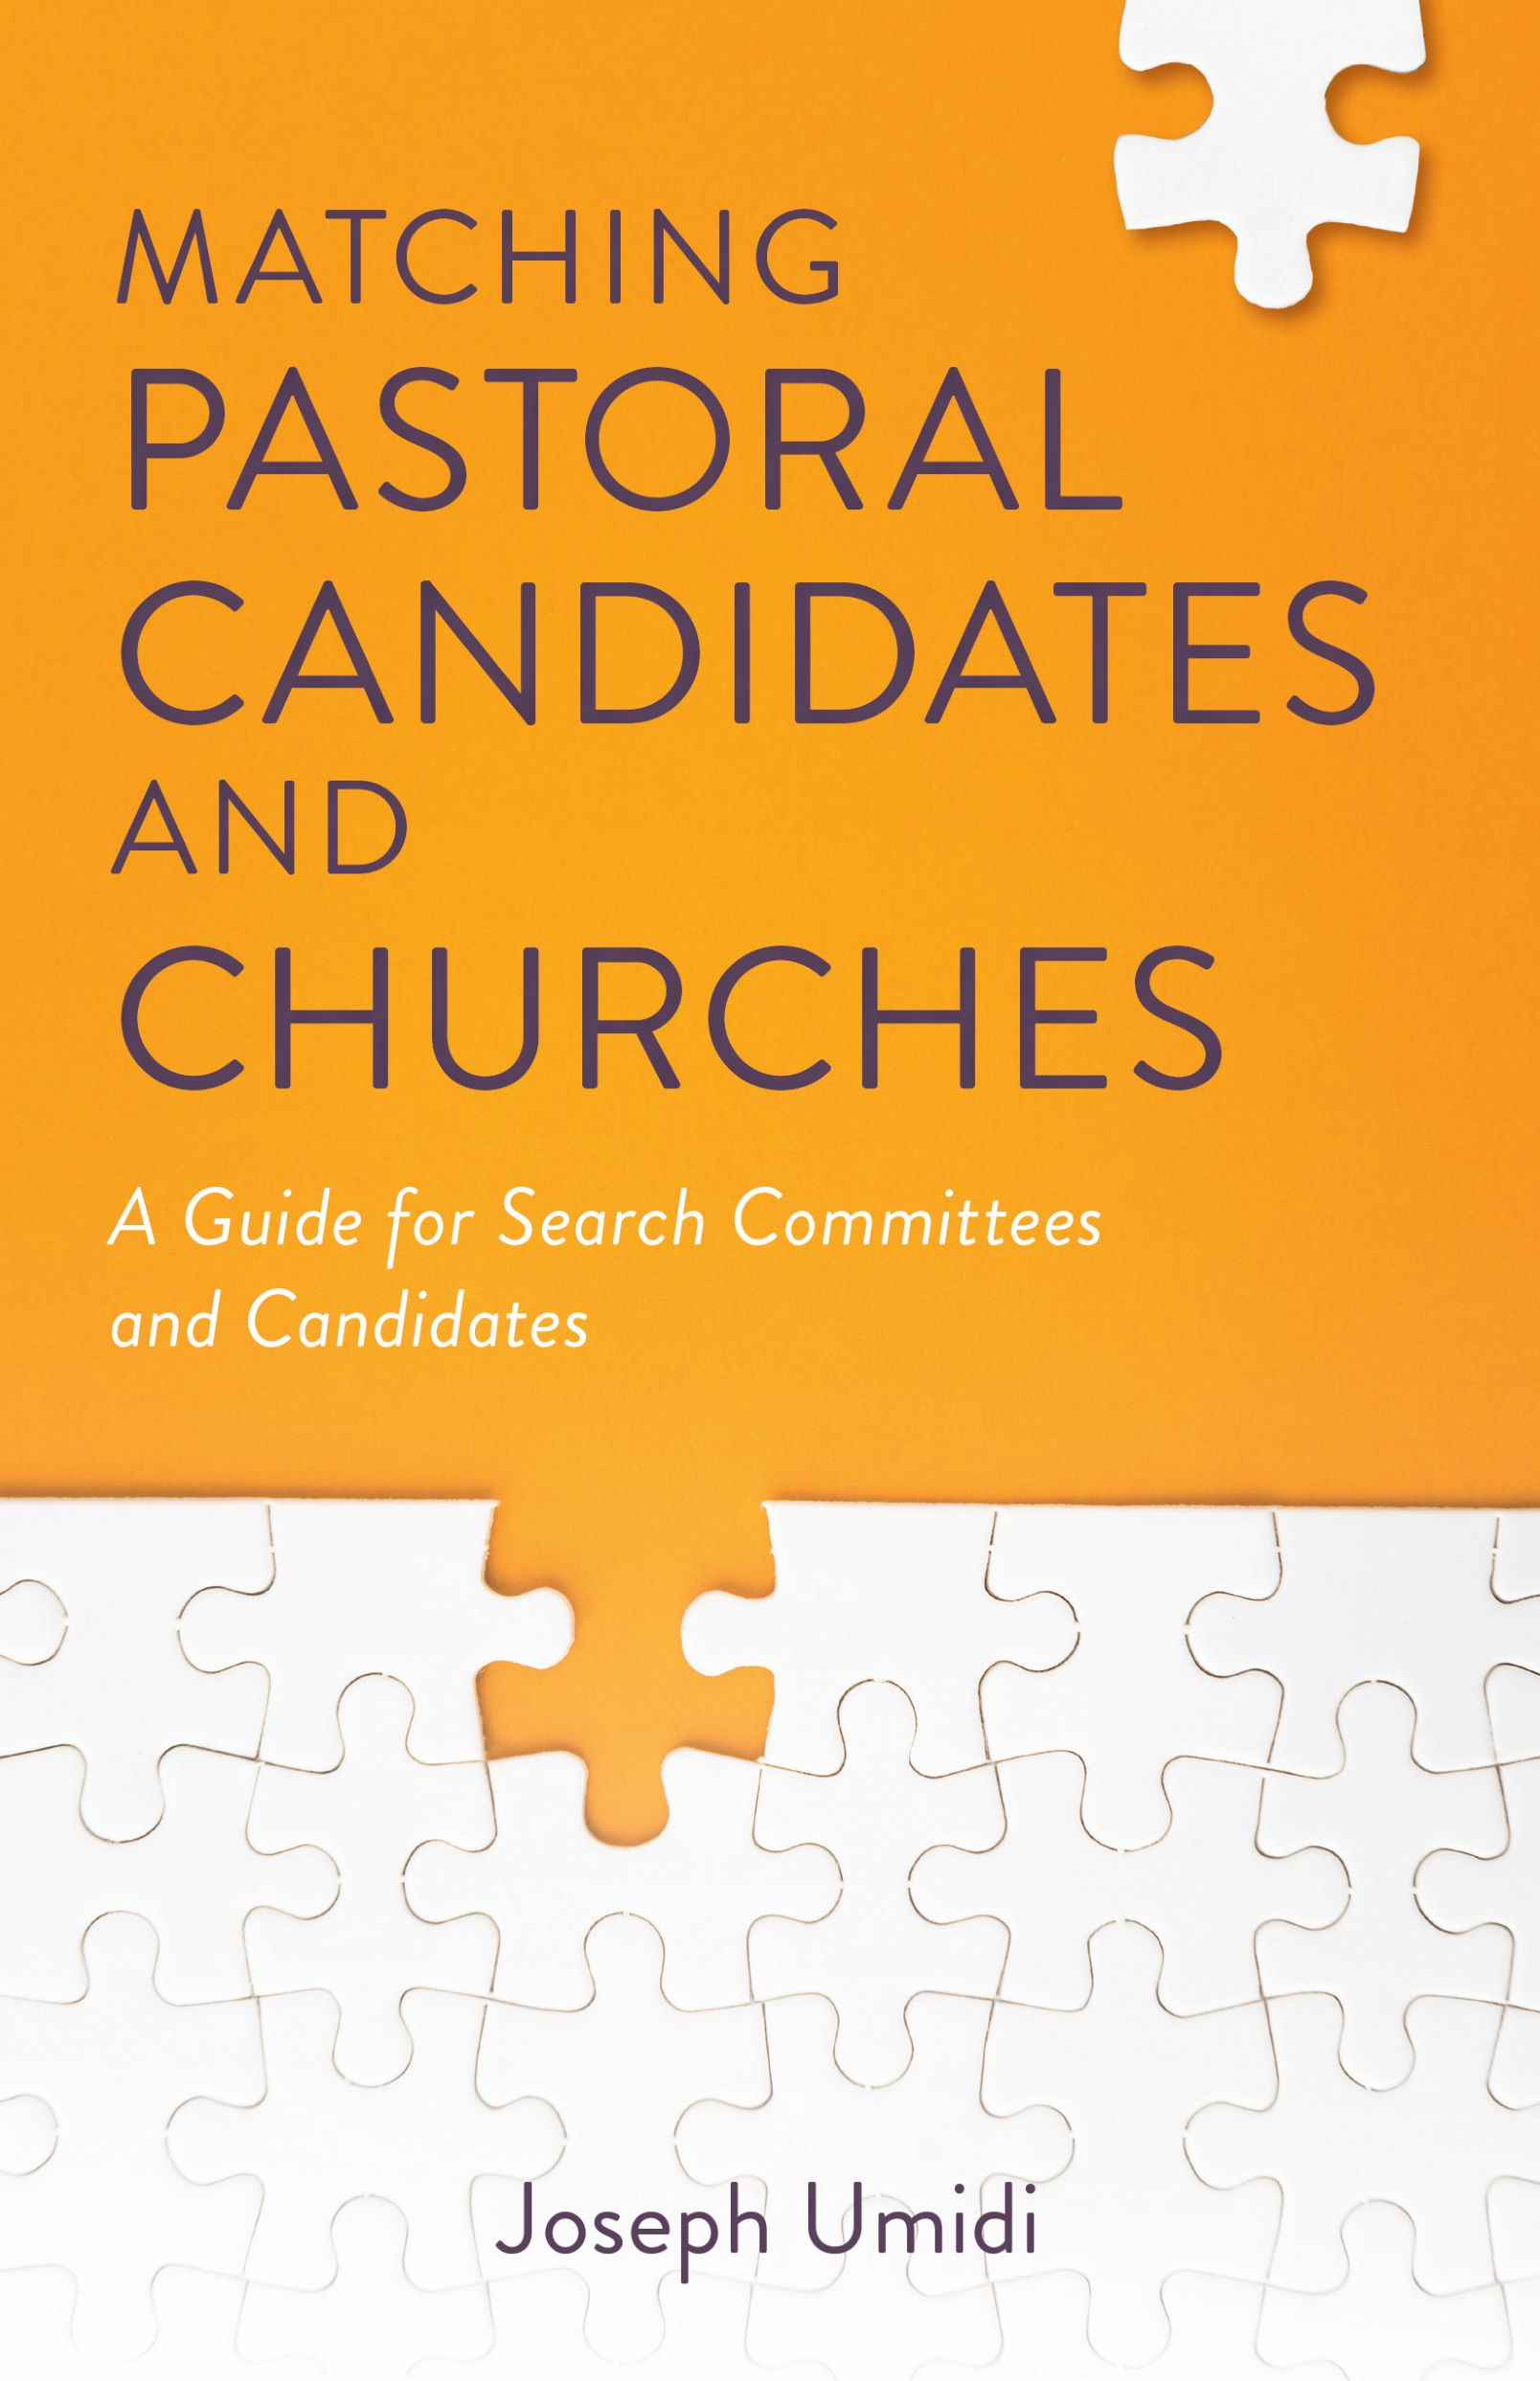 Matching Pastoral Candidates and Churches